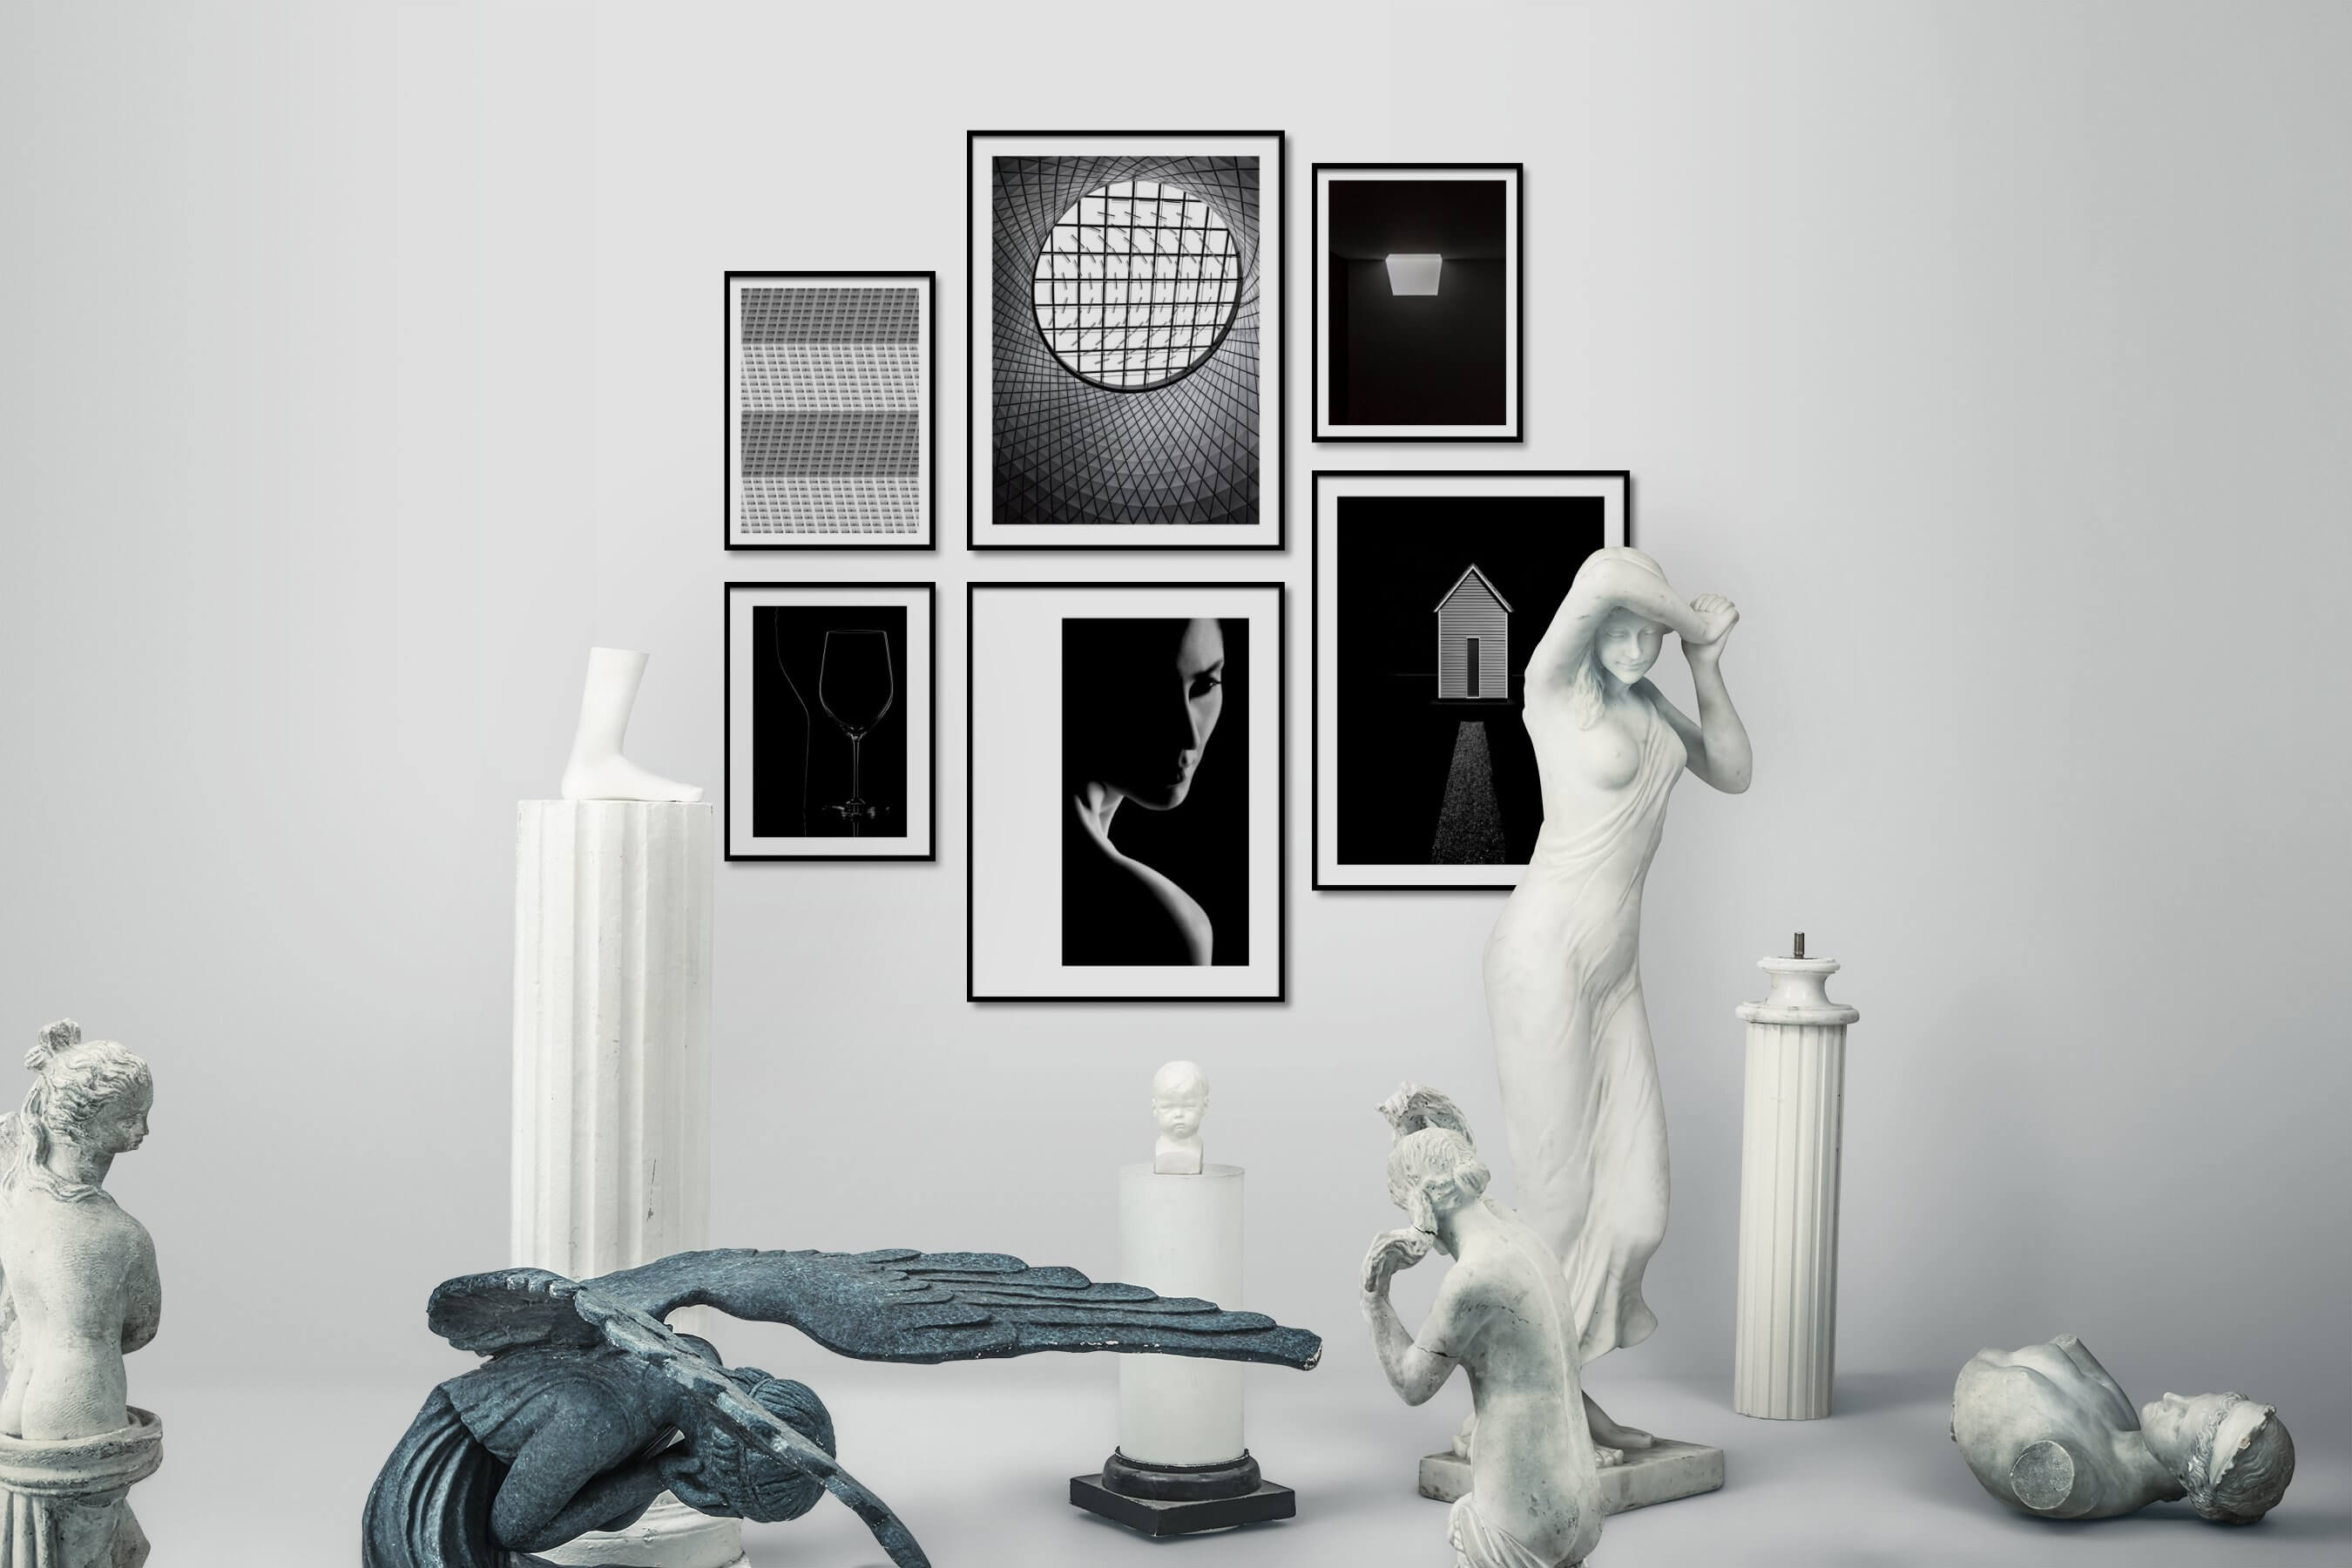 Gallery wall idea with six framed pictures arranged on a wall depicting Black & White, For the Moderate, For the Maximalist, For the Minimalist, and Fashion & Beauty